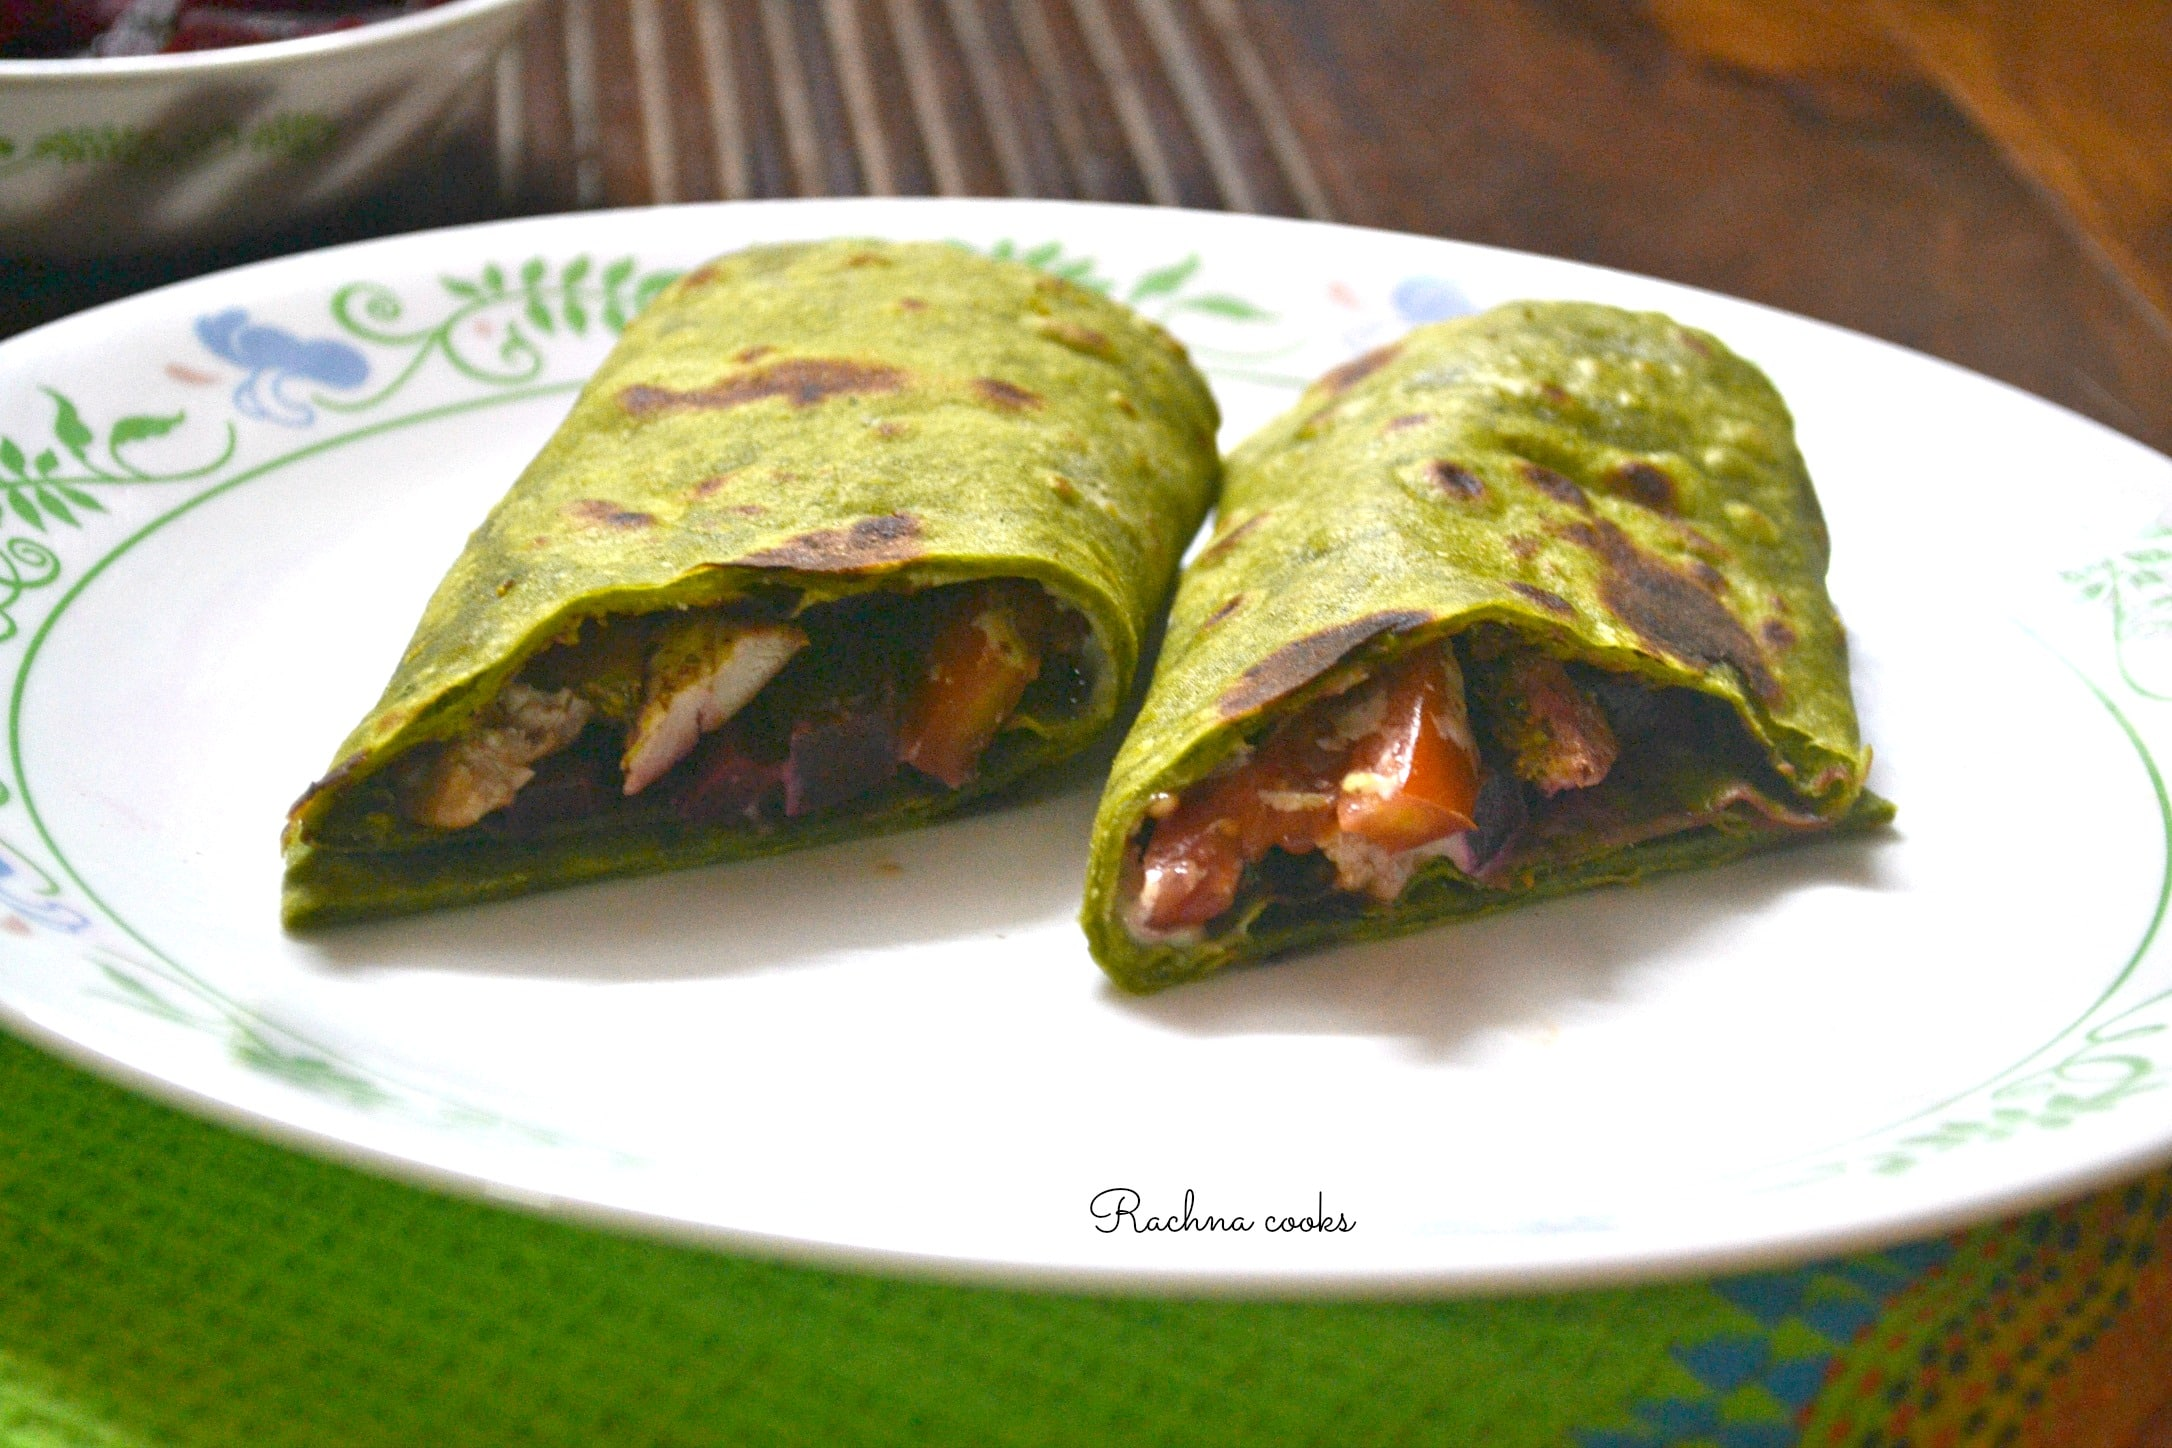 Iron Rich Green Wrap with Chicken and Veggies